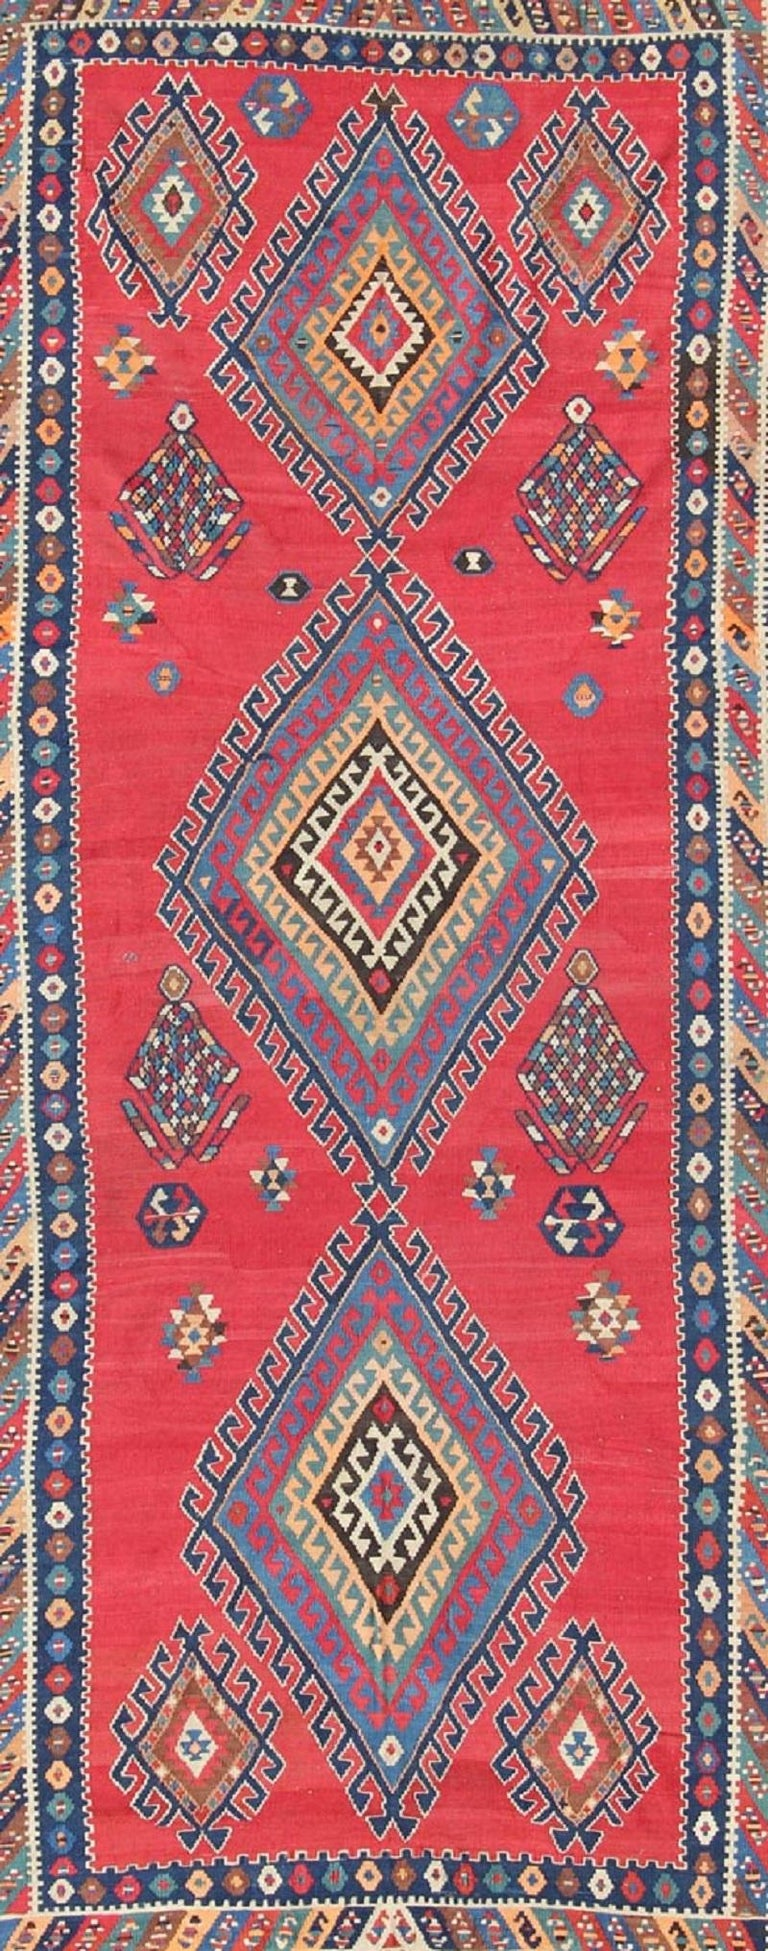 Hand-Knotted Antique Persian Qashqai Kilim Gallery Rug with Geometric Diamond Design For Sale